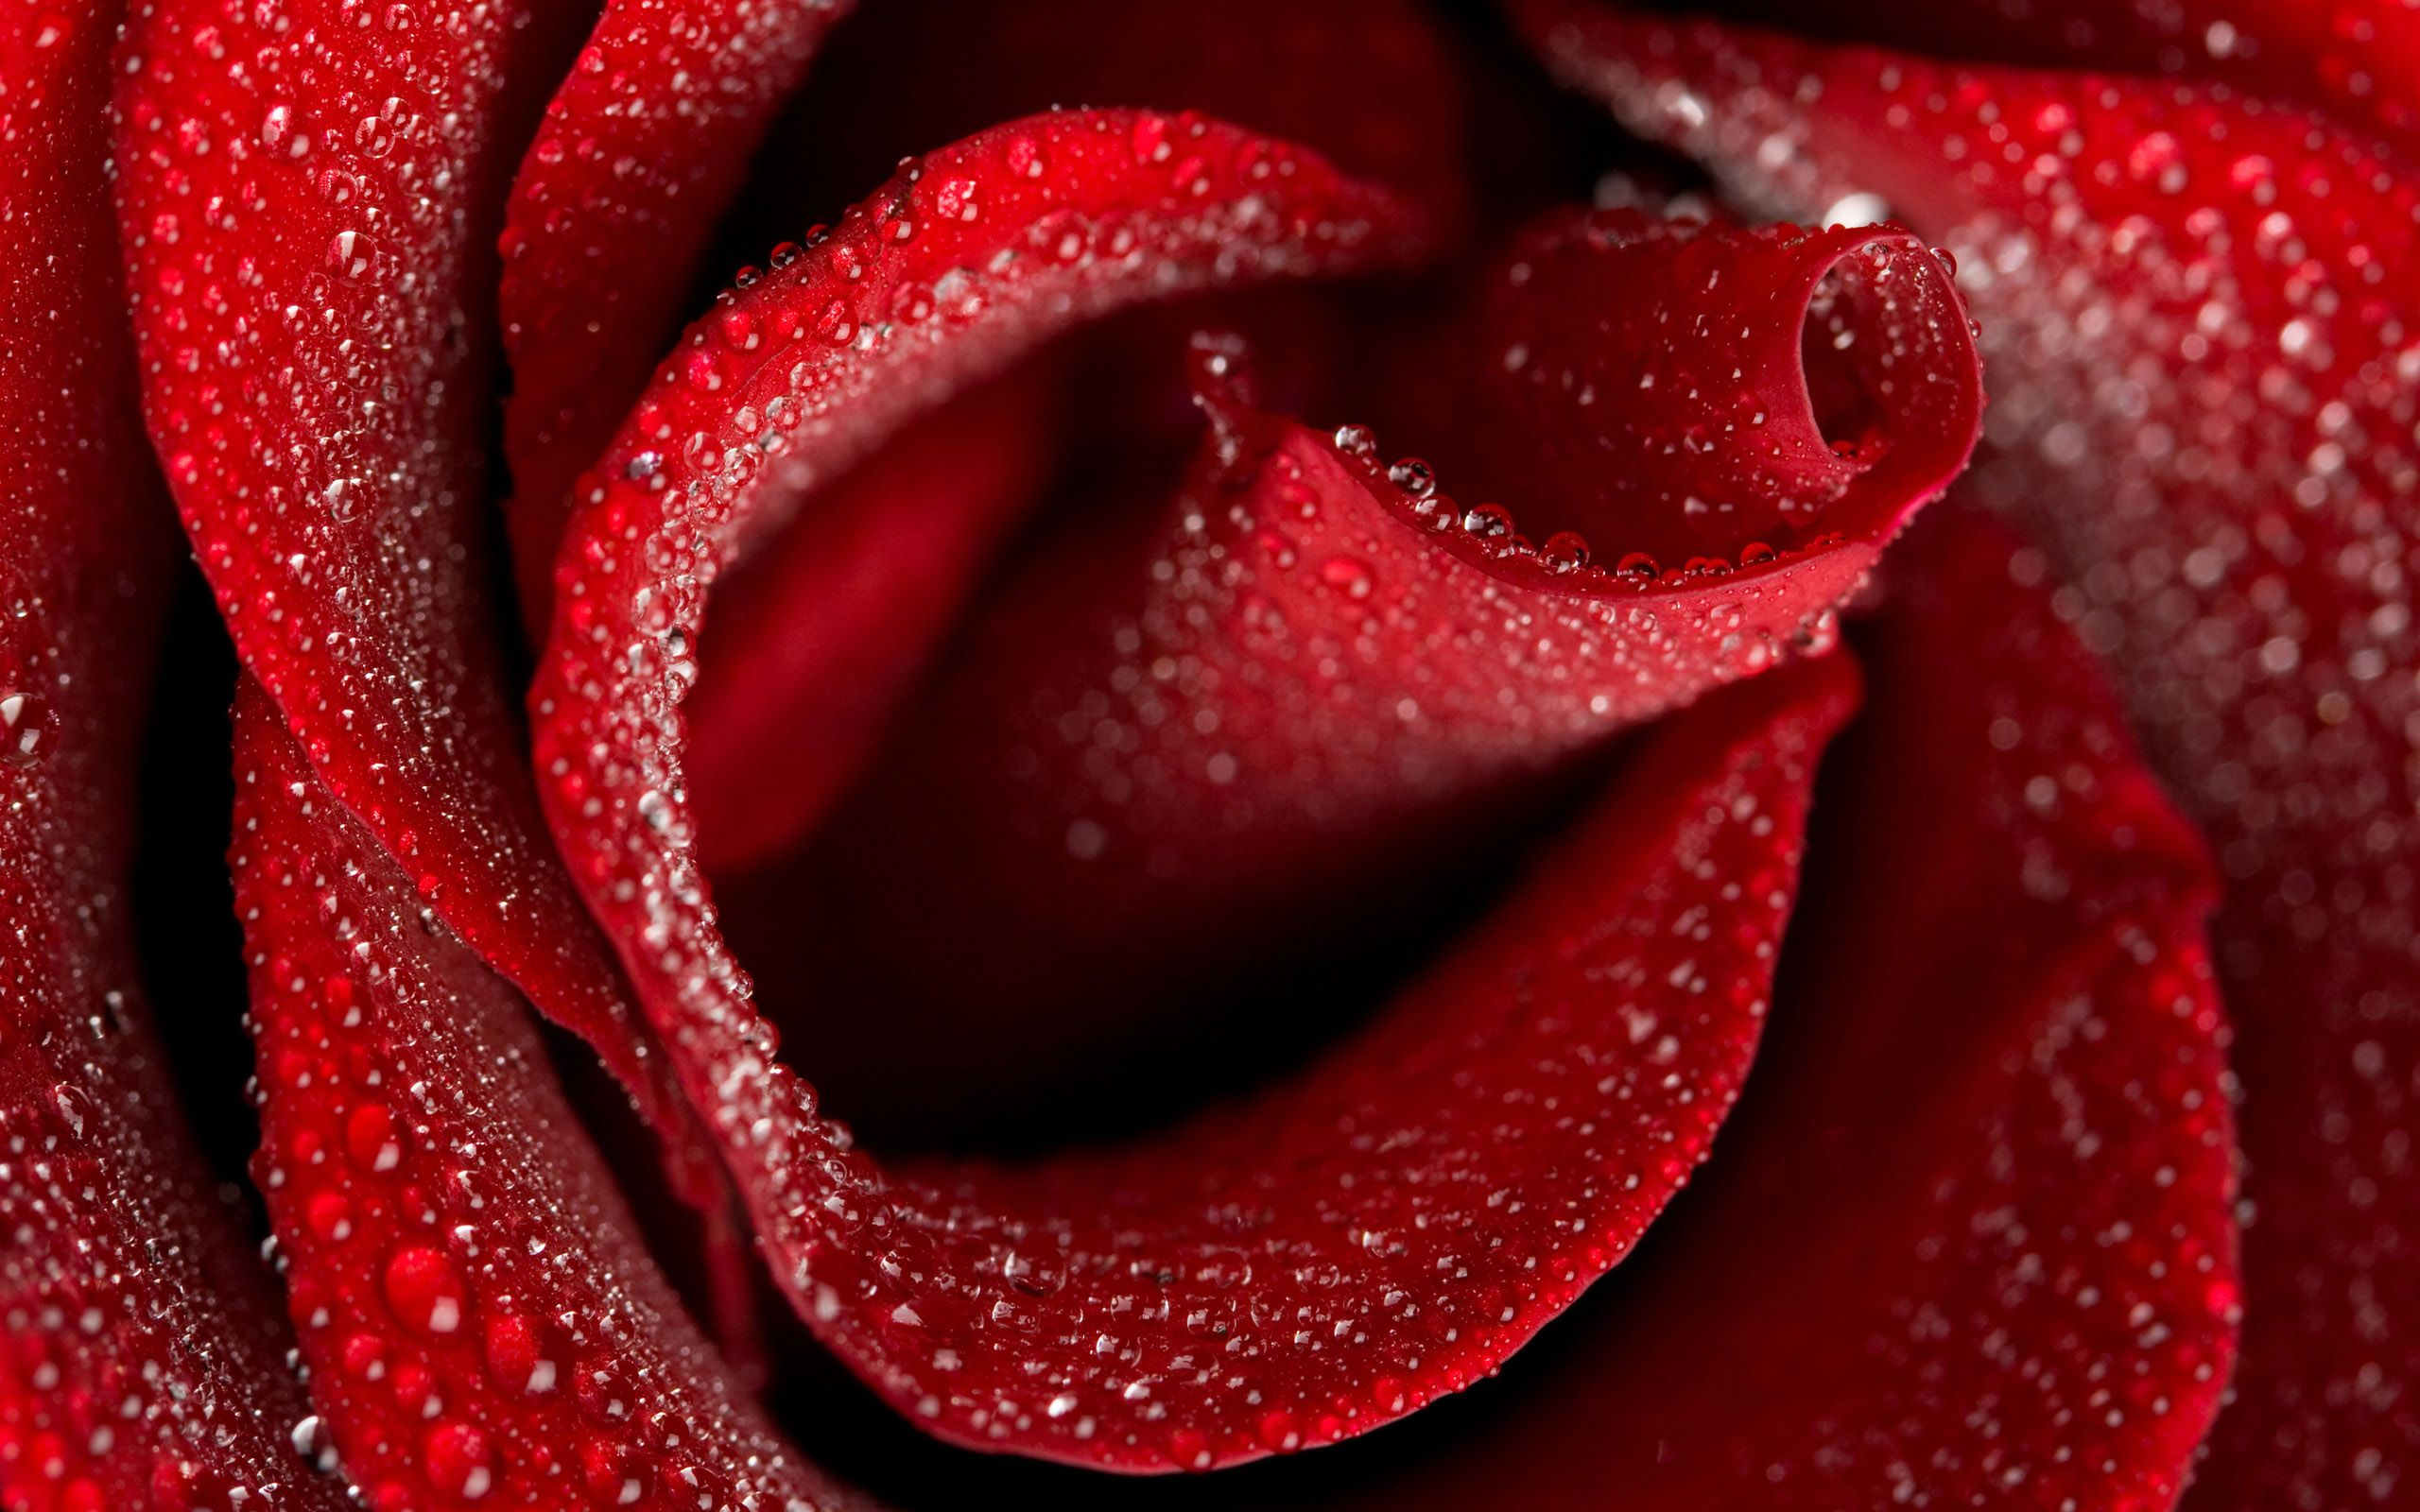 Hd wallpaper rose - Rose Flower Hd Wallpapers Download Wallpaper Pinterest Hd Wallpaper Wallpaper And Wallpaper Backgrounds